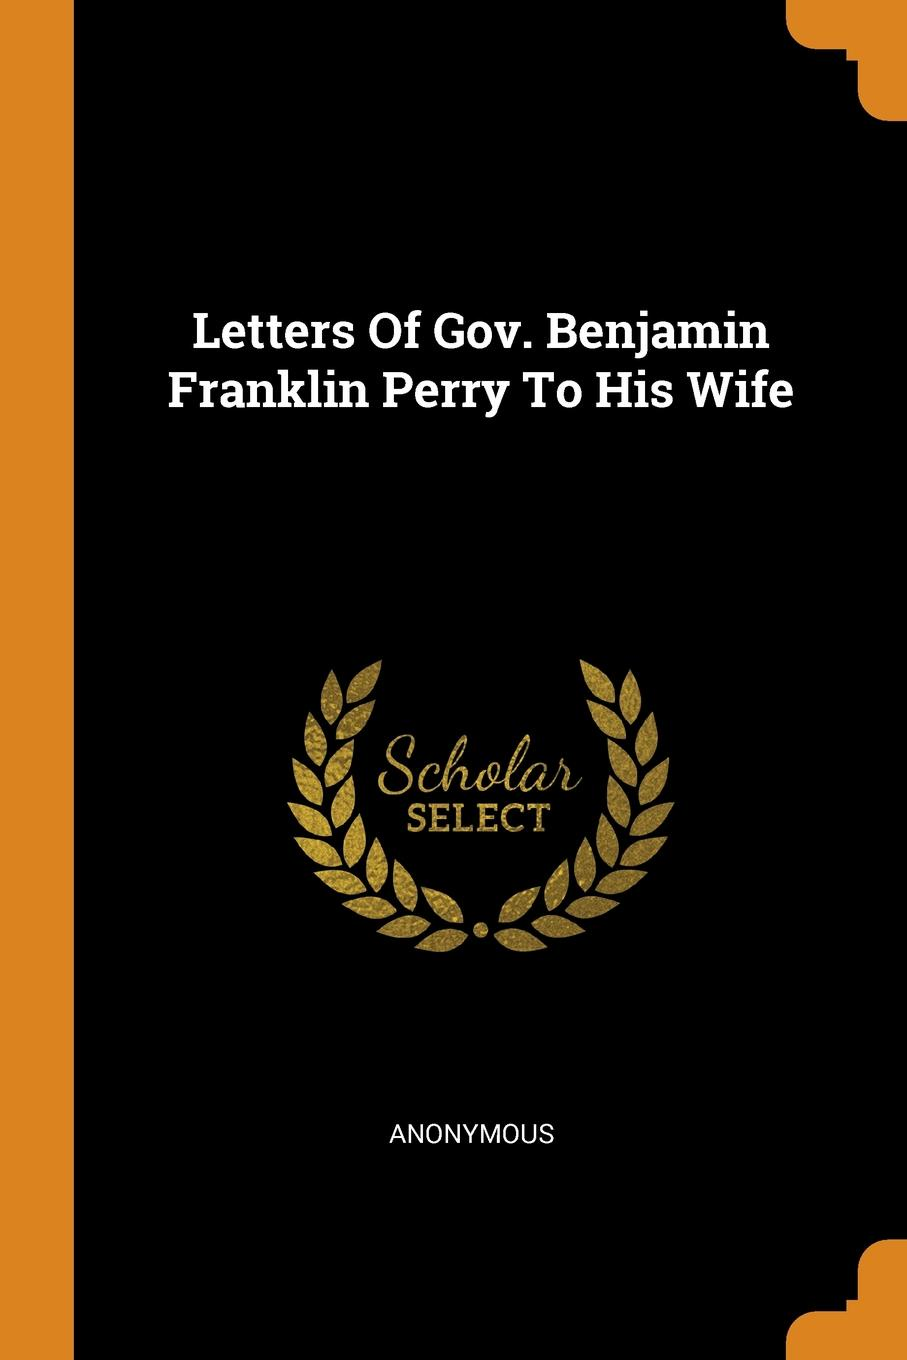 Letters Of Gov. Benjamin Franklin Perry To His Wife